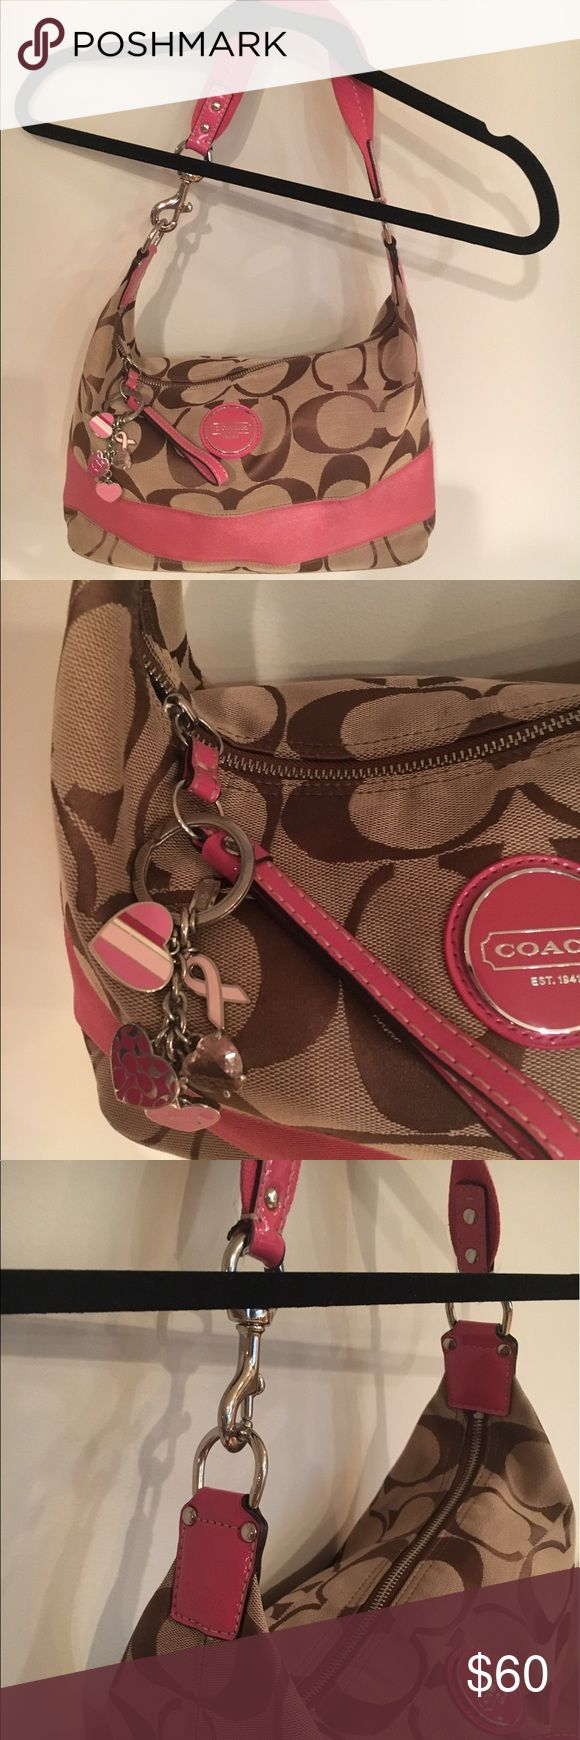 Coach Purse, Coach key Chain & Dust Bag Coach Purse, Coach key Chain & Dust Bag. Yes, it's authentic (I feel like I shouldn't have to say that). YKK zipper and patch inside. Gently used but mostly clean! Comes w/ Coach breast awareness key chain & dust bag! Coach Bags Shoulder Bags